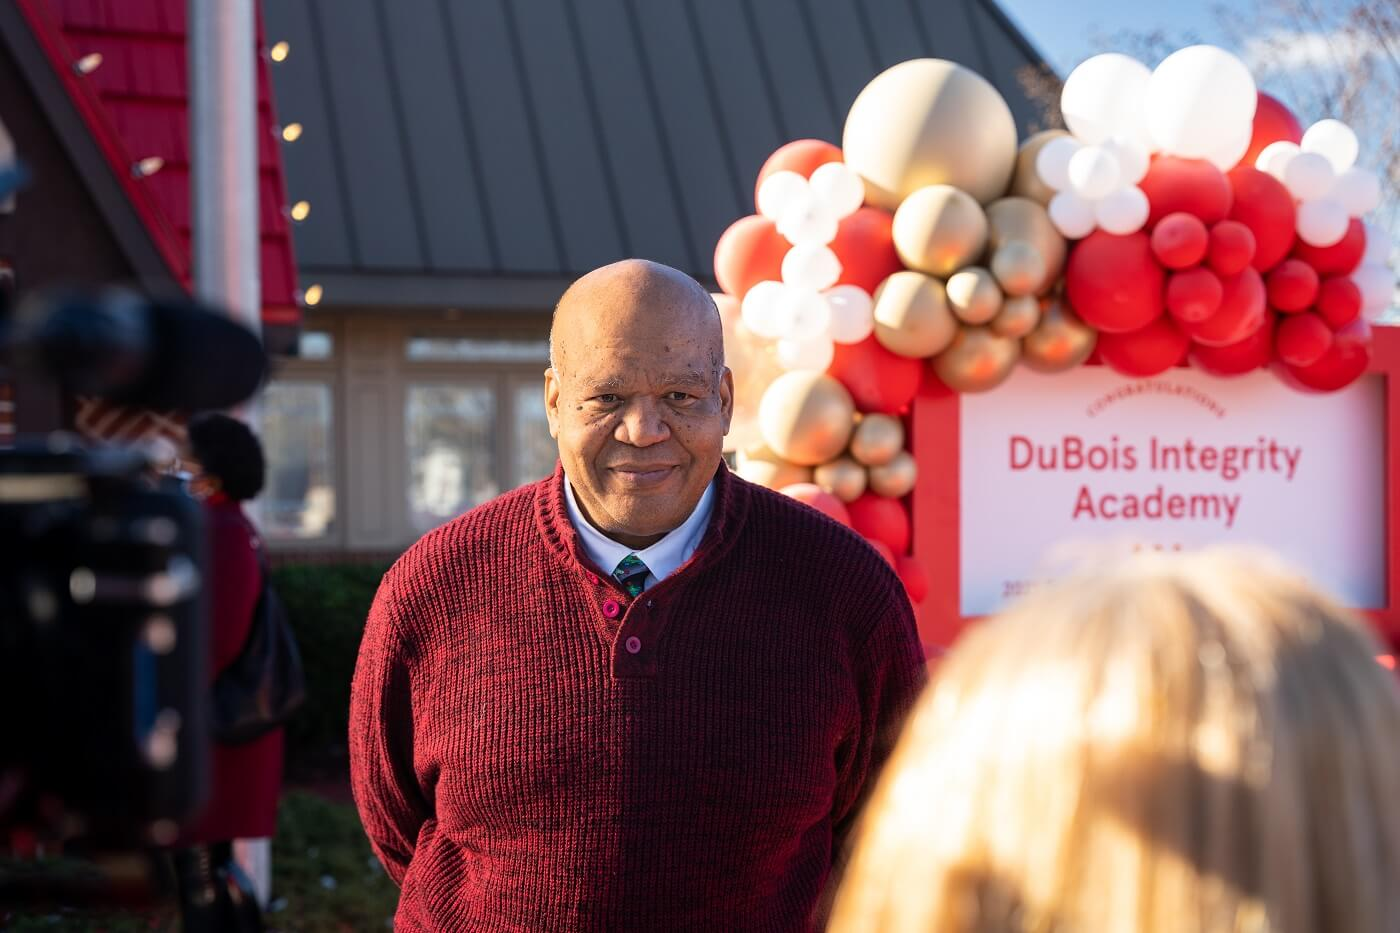 DuBois Integrity Academy Named the 2021 S. Truett Cathy Honoree